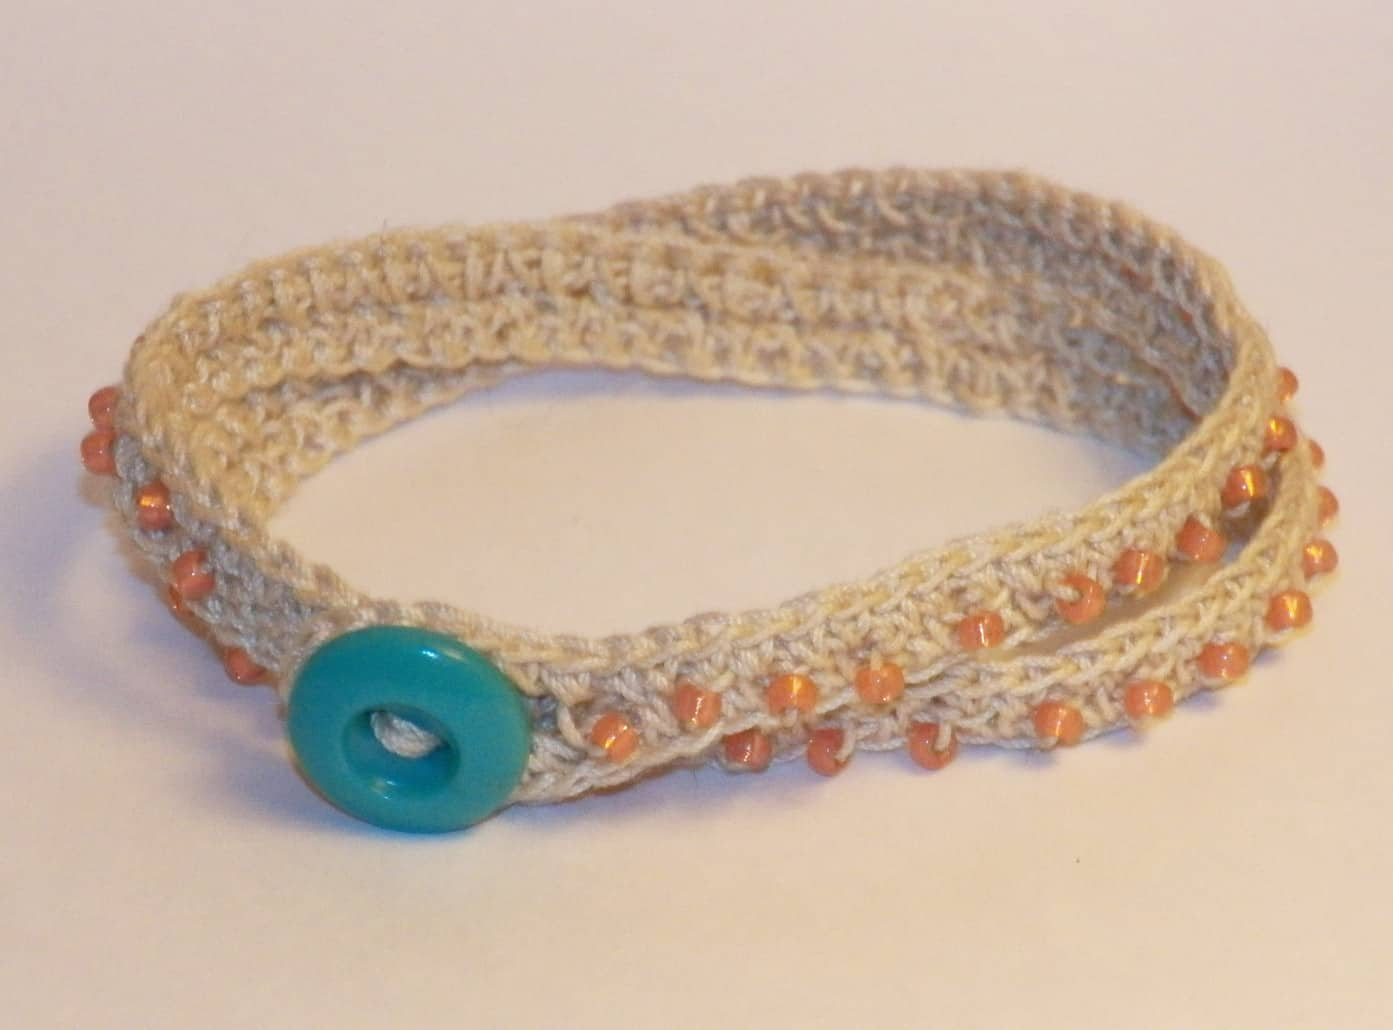 Crocheted beaded wrap bracelet with a button